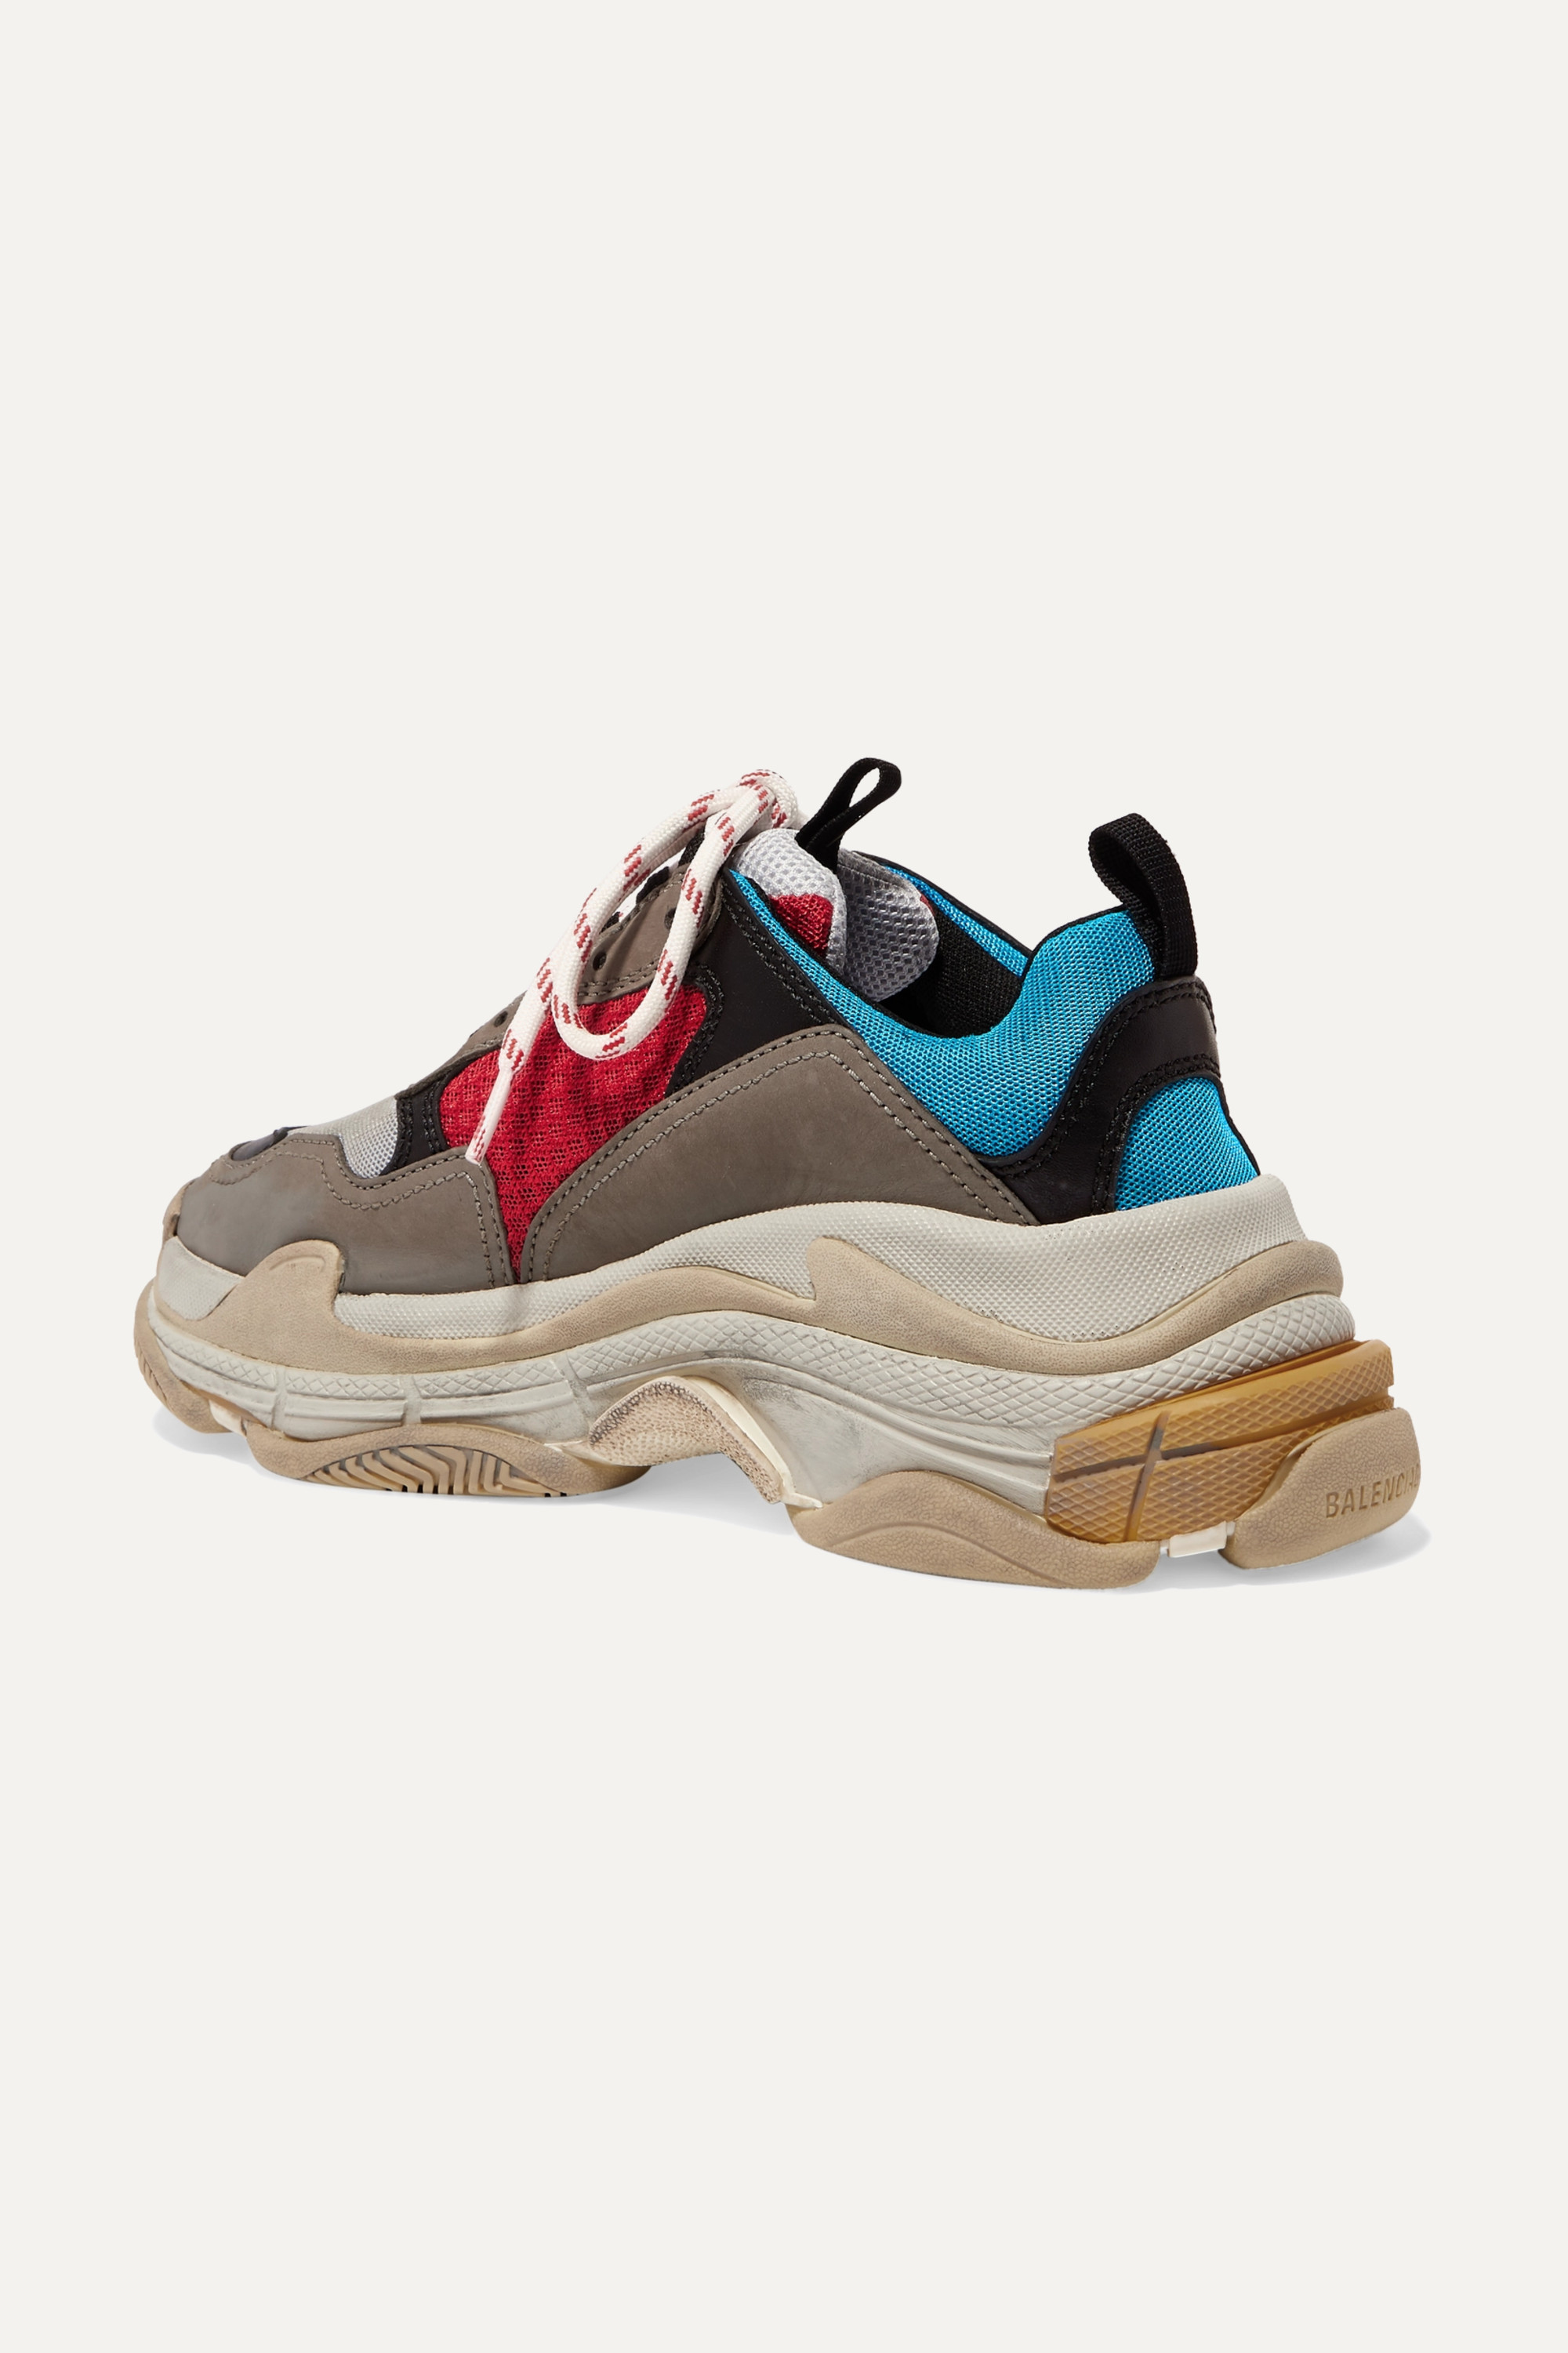 Balenciaga Triple S logo-embroidered leather, nubuck and mesh sneakers